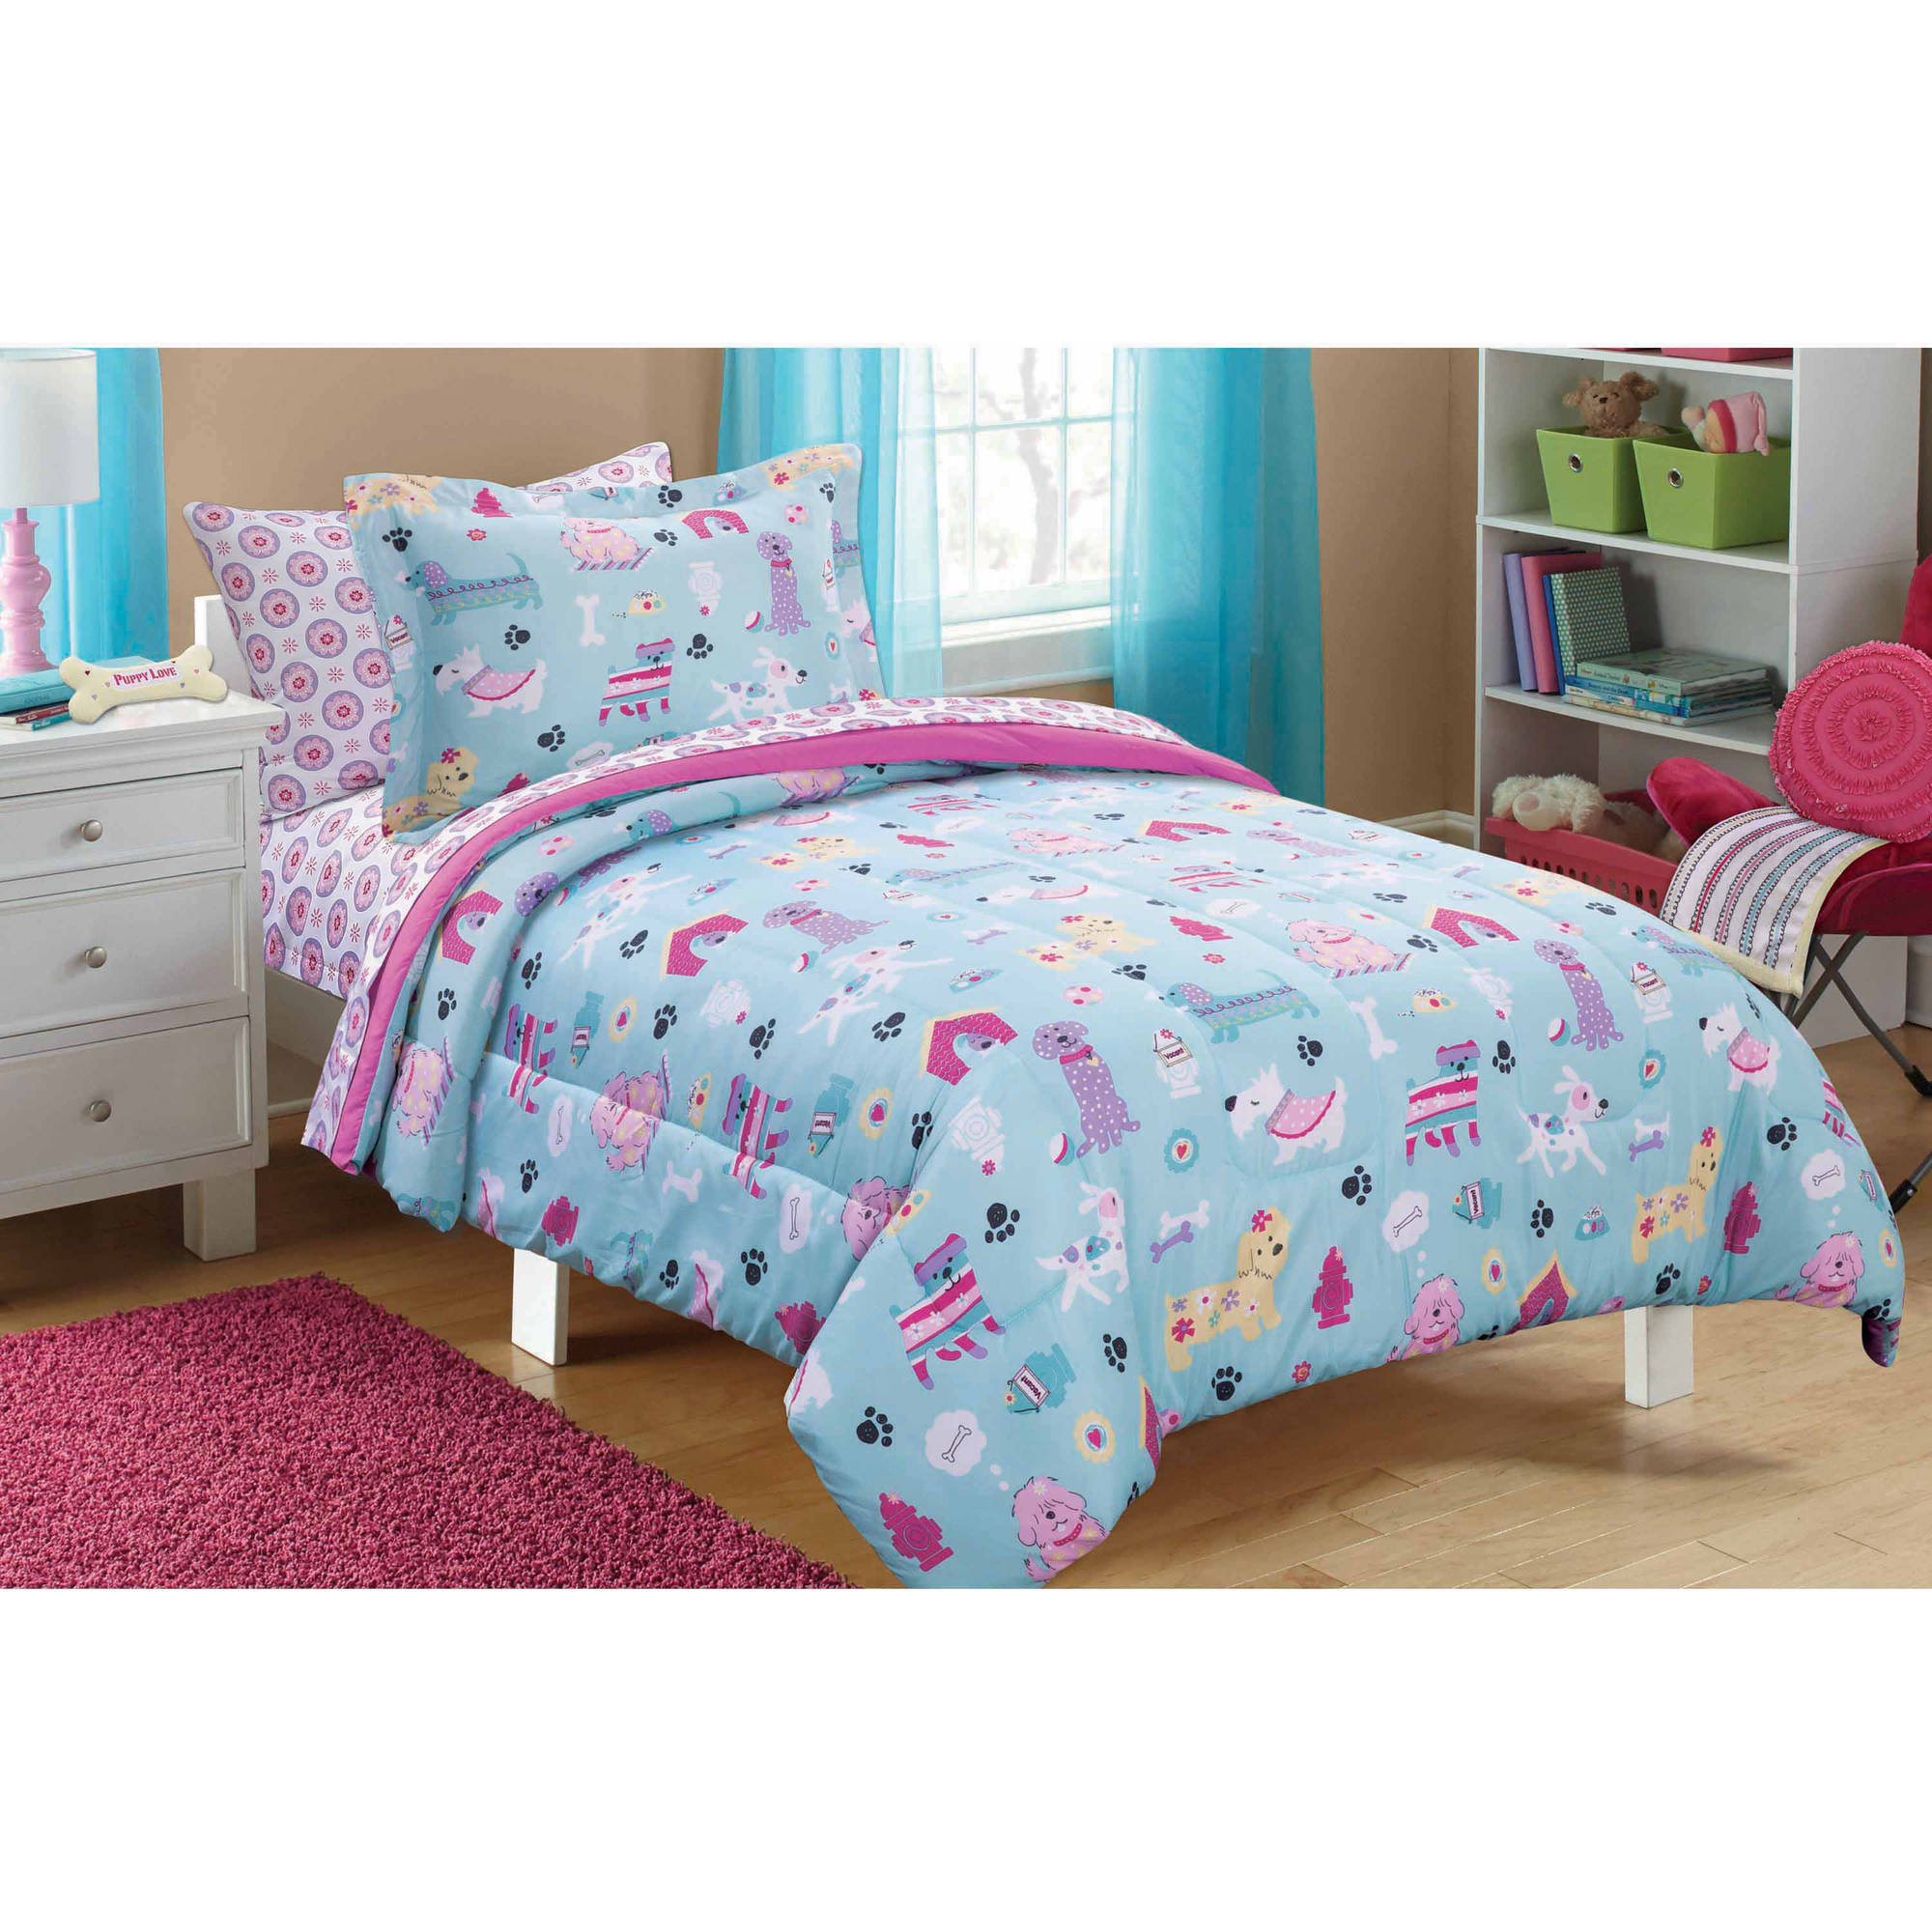 Bedding sets for teenage girls walmart - Bedding Sets For Teenage Girls Walmart 18